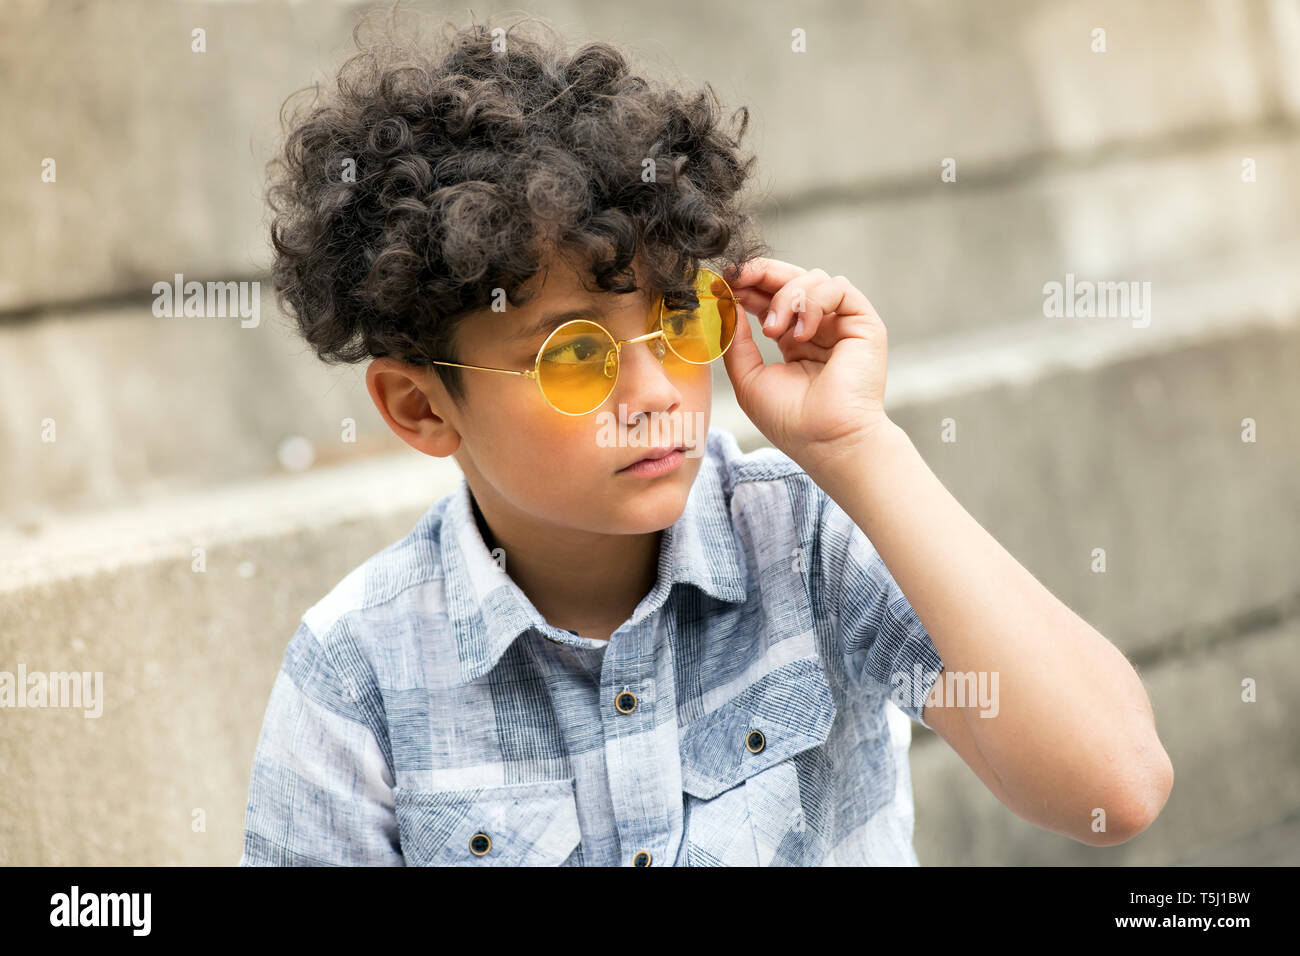 Young curly headed boy with trendy yellow round shades or sunglasses sitting outdoors looking to the side with a serious expression - Stock Image